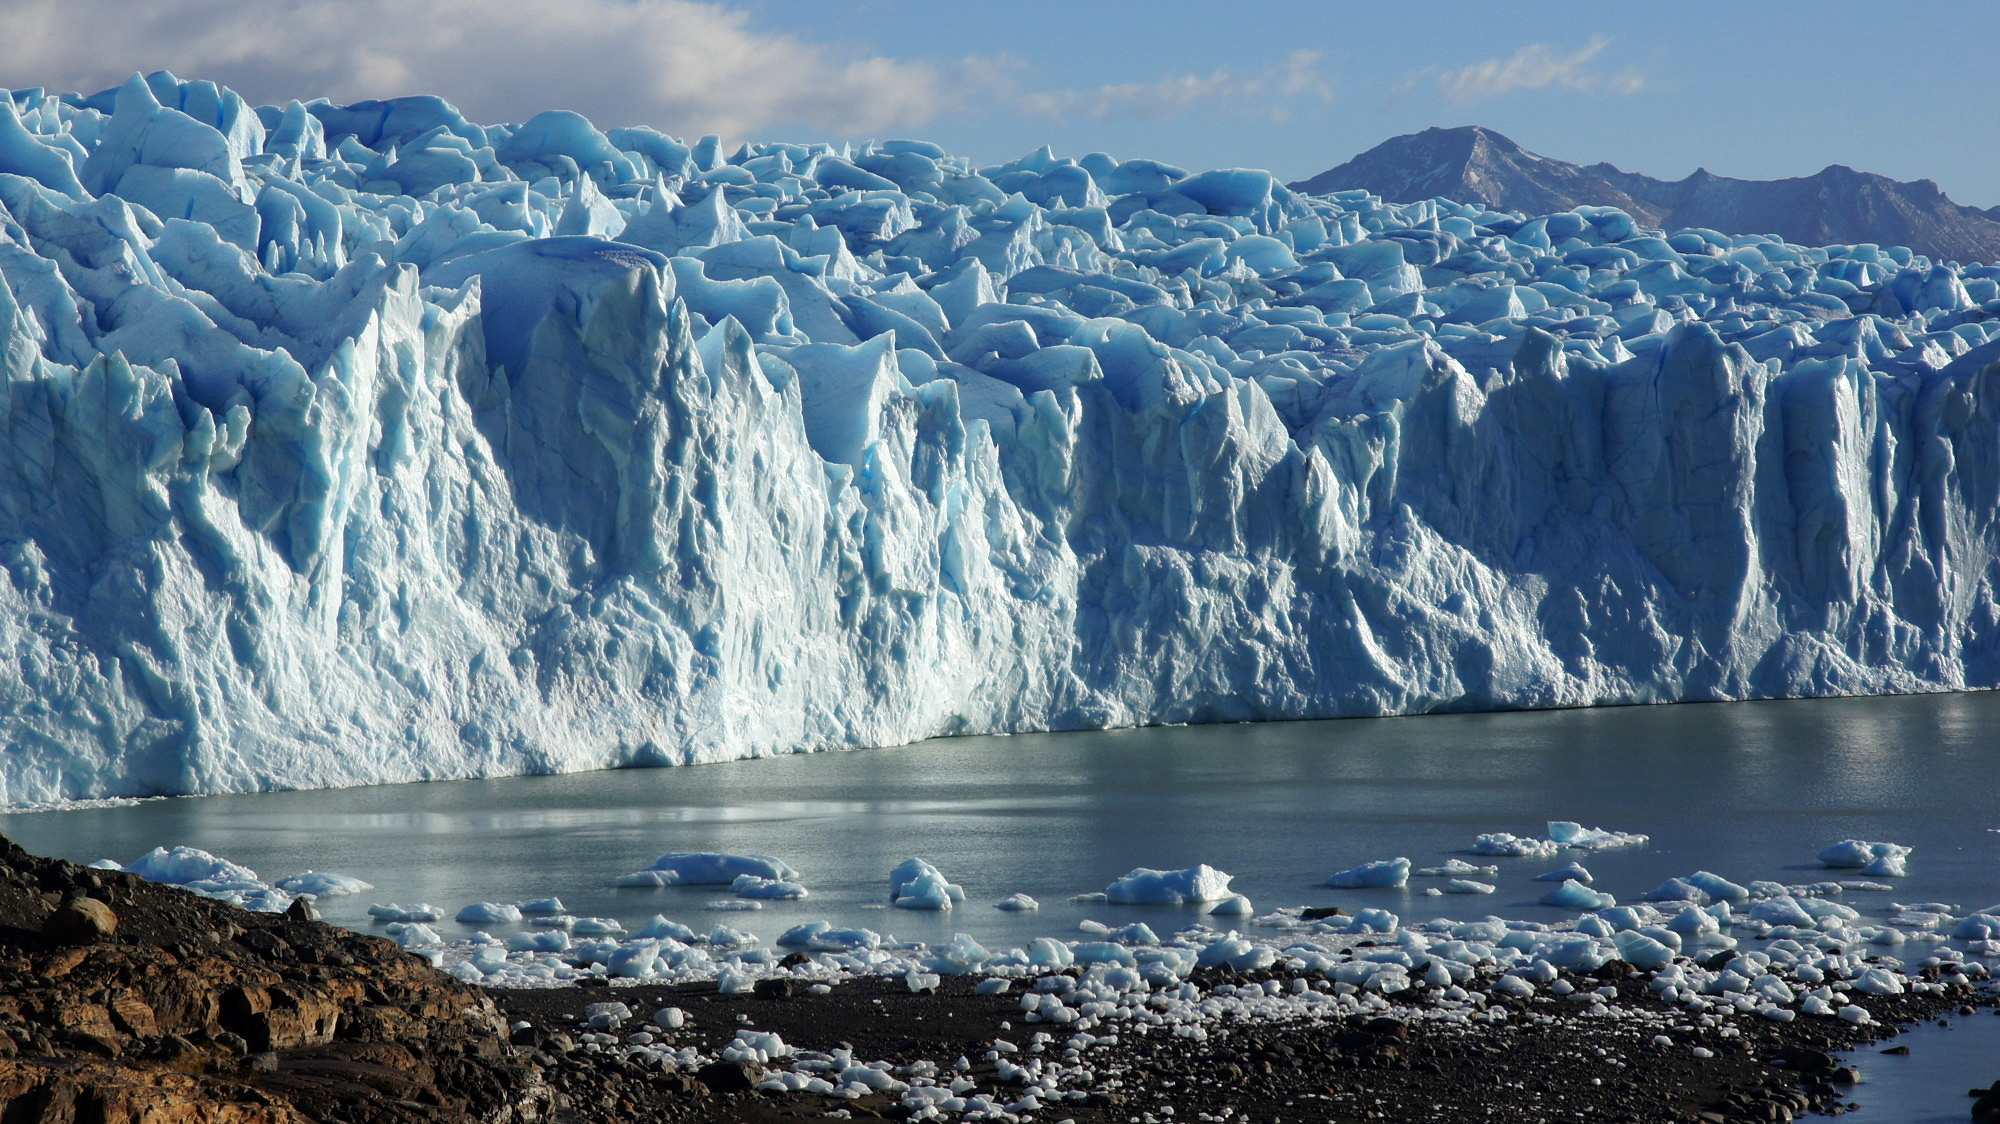 The Upsala Glacier in Argentina, the largest glacier in South America, flows into Lago Argentino. When such outlet glaciers shrink, they first have to form a new stable front. (Image: FAU/Matthias Braun)